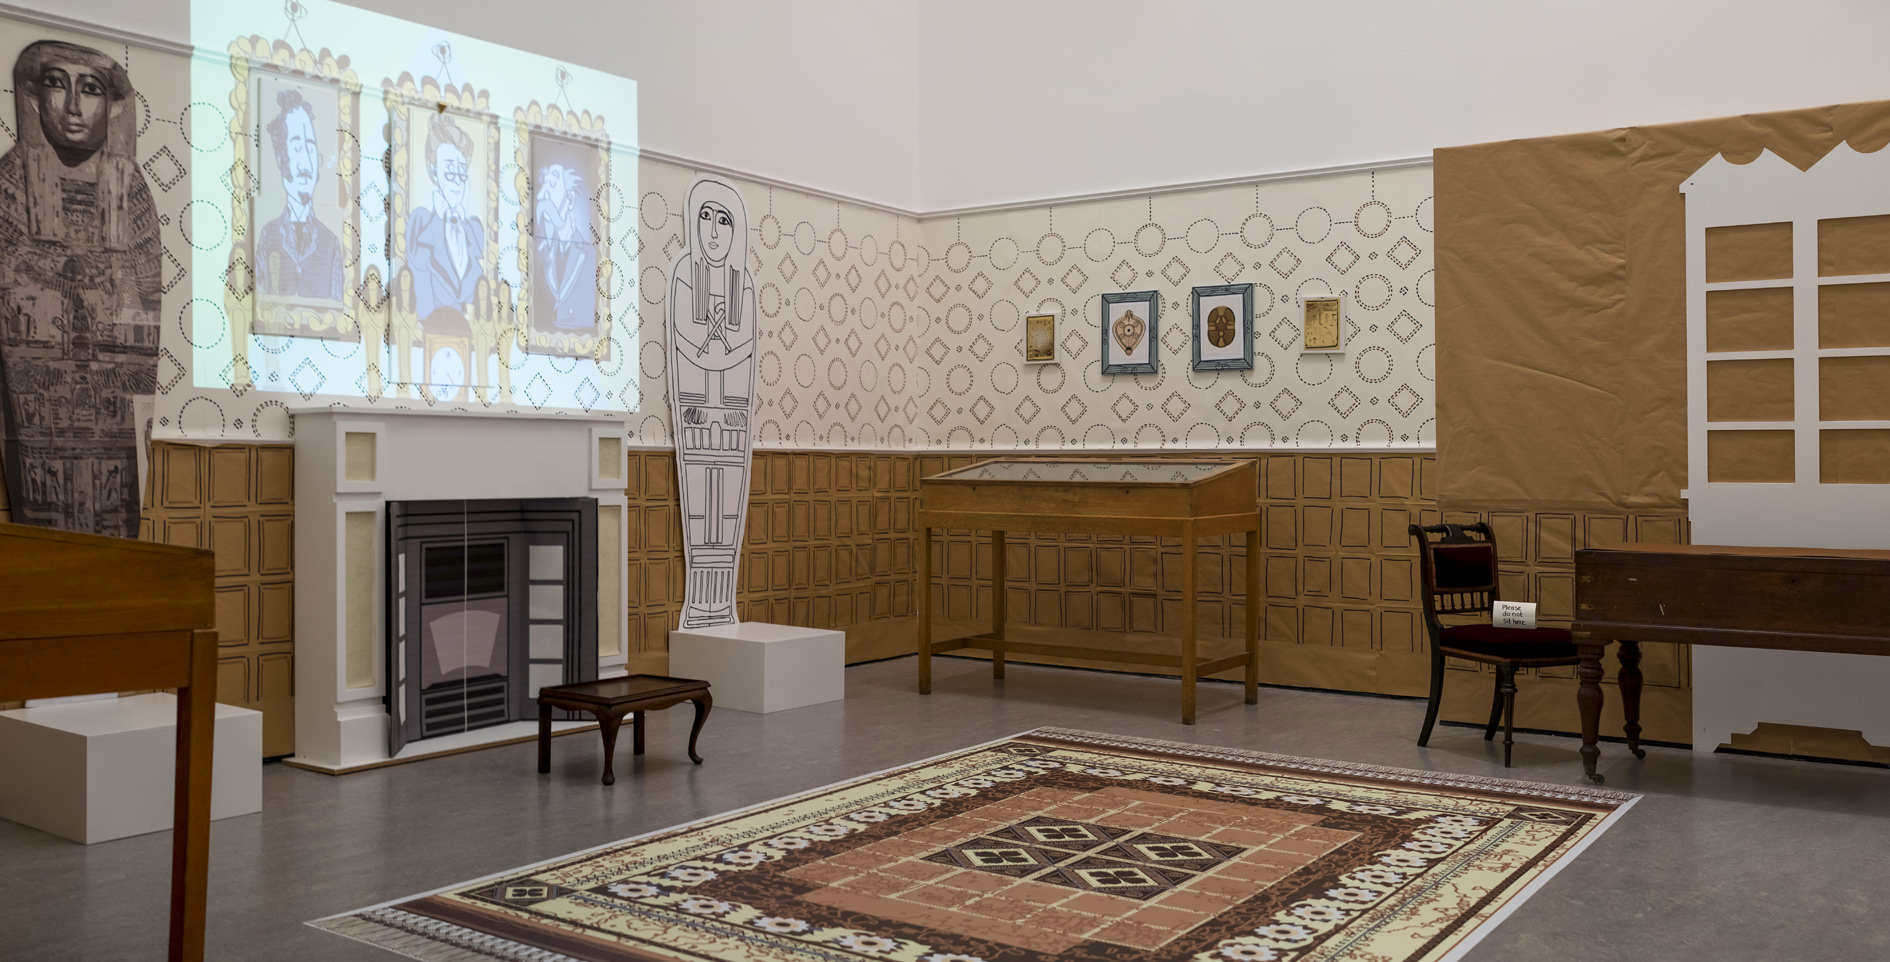 A large room with a fireplace, table and chair and a couple of wooden display cases containing artefacts. There are paper mockups of Egyptian coffins either side of the fireplace and cartoon-style portraits being projected onto the wall above the fireplace